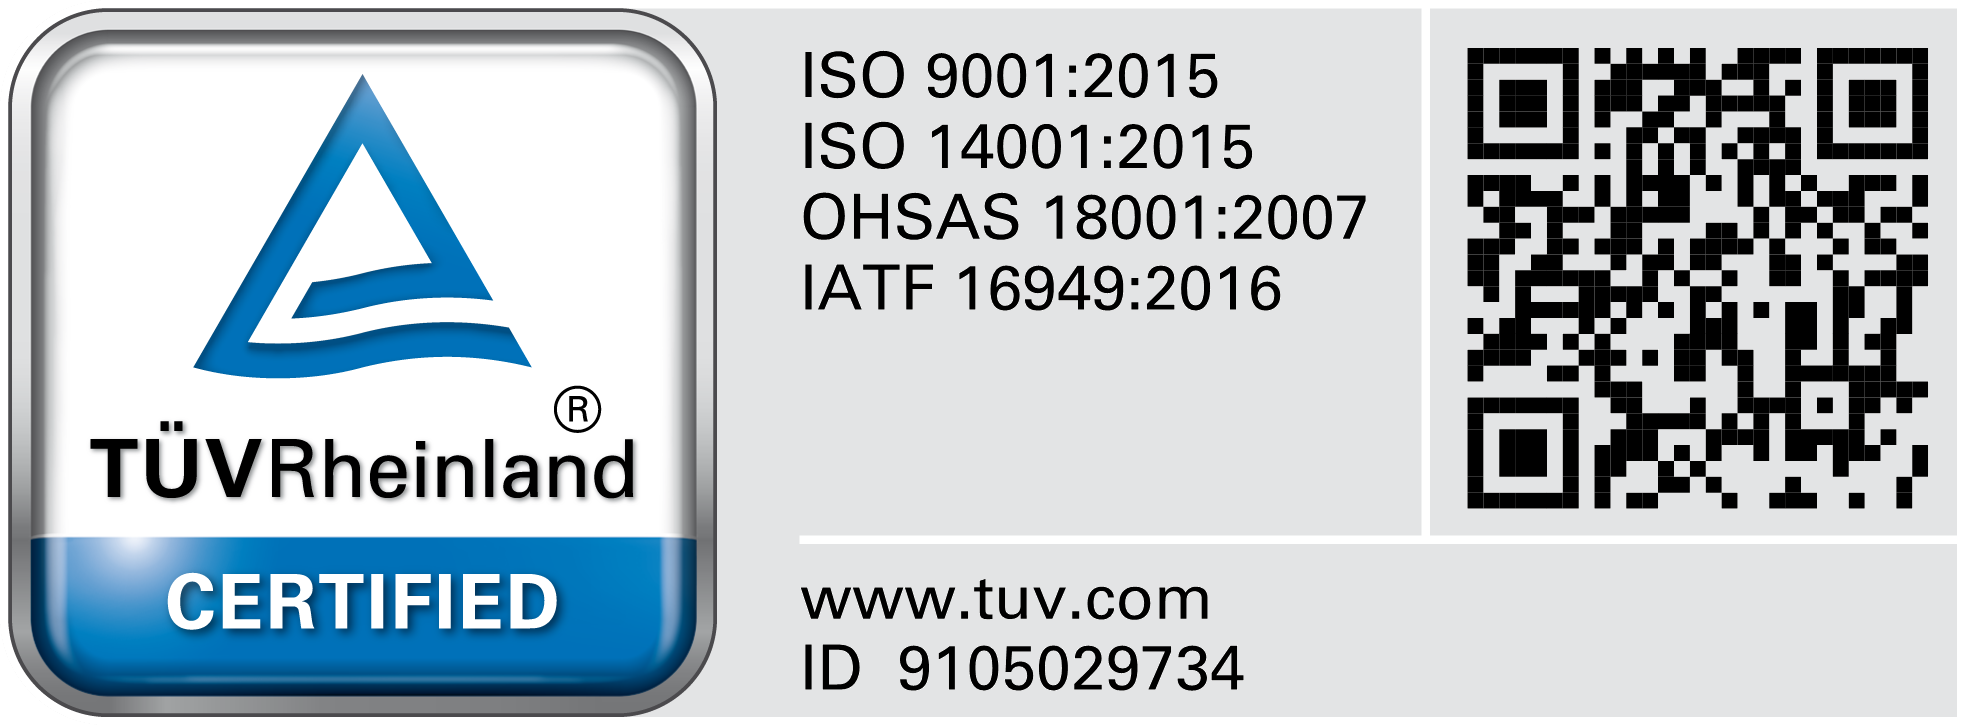 OHSAS 18001:1999 - Certificate Registration No : 01 113 05 3505